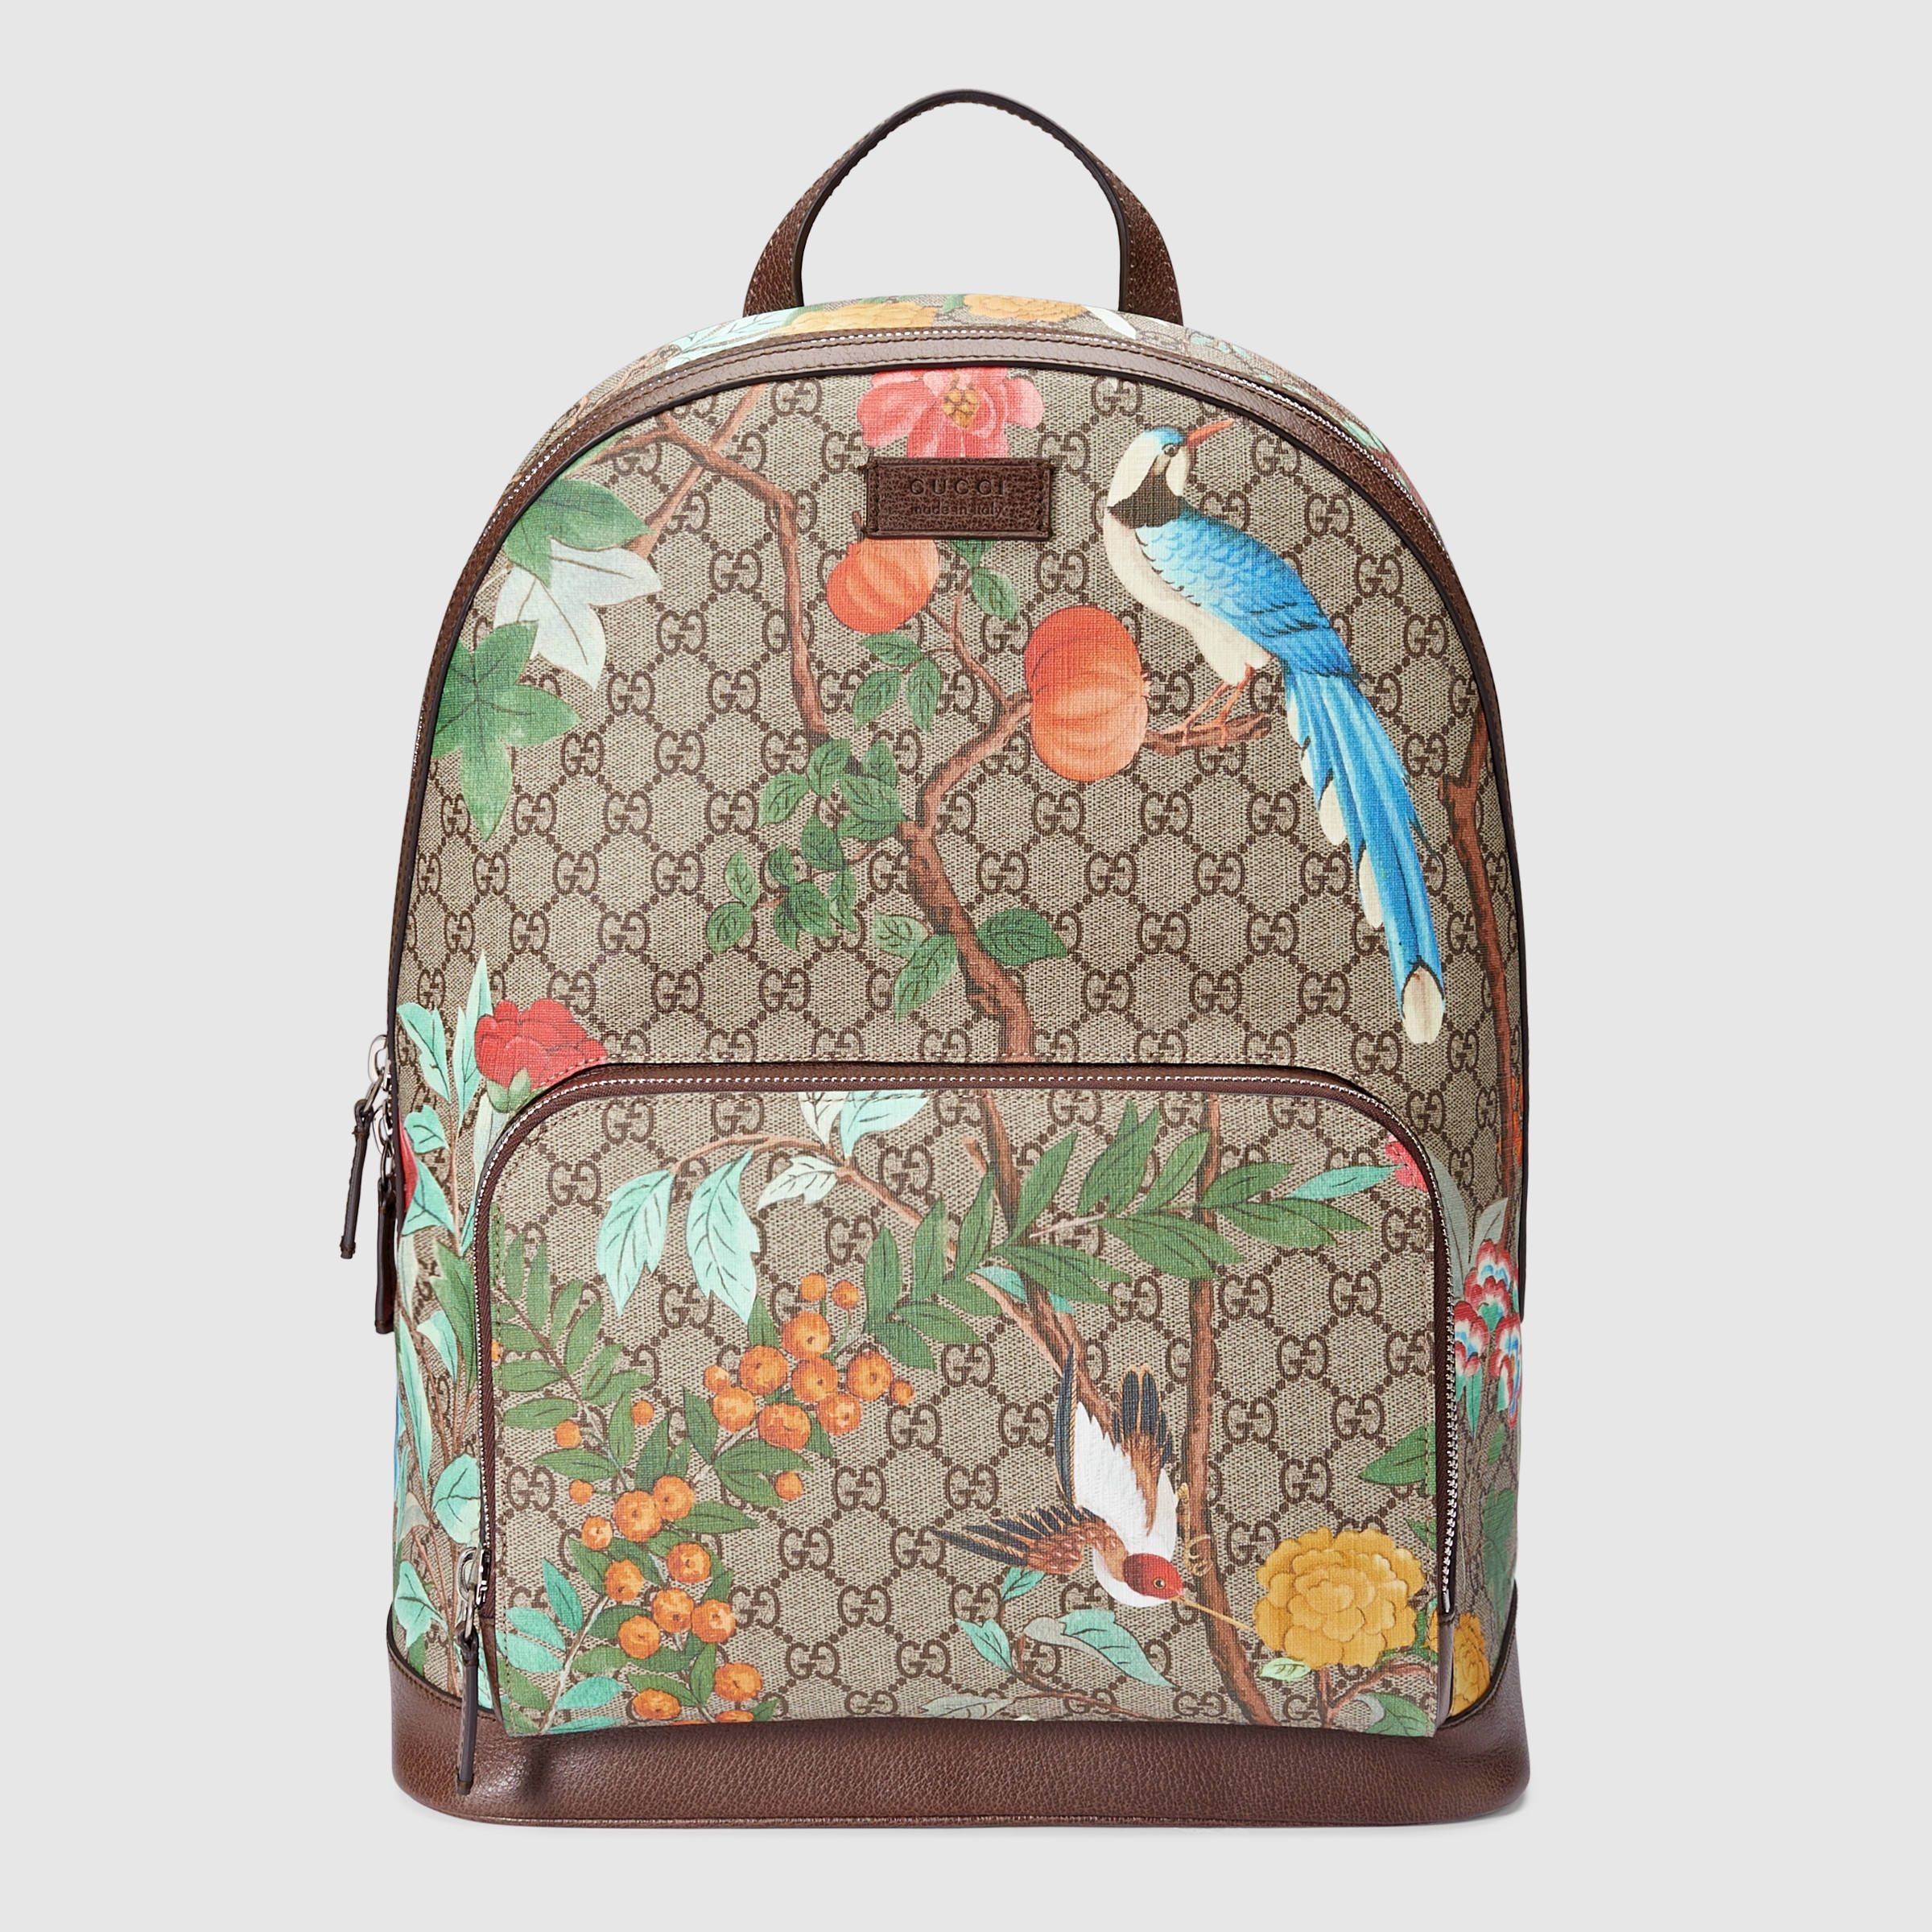 d5189c175a71 Gucci Men - Gucci Tian GG Supreme backpack - 428027K0LCN8685 ...